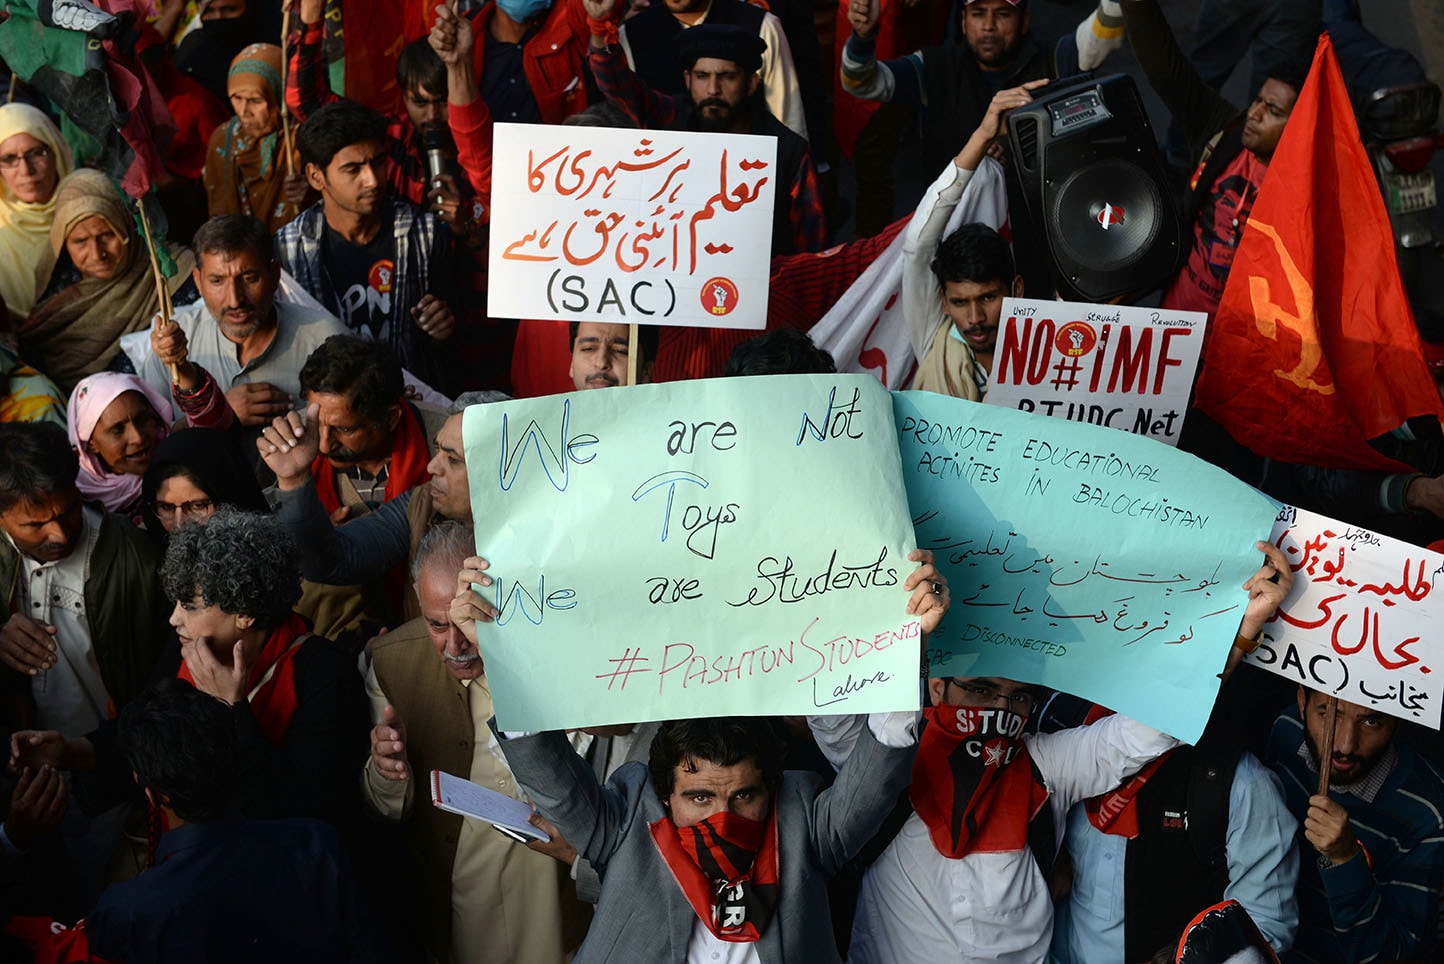 A Pashtun student holds up a sign at the march in Lahore | Murtaza Ali/White Star